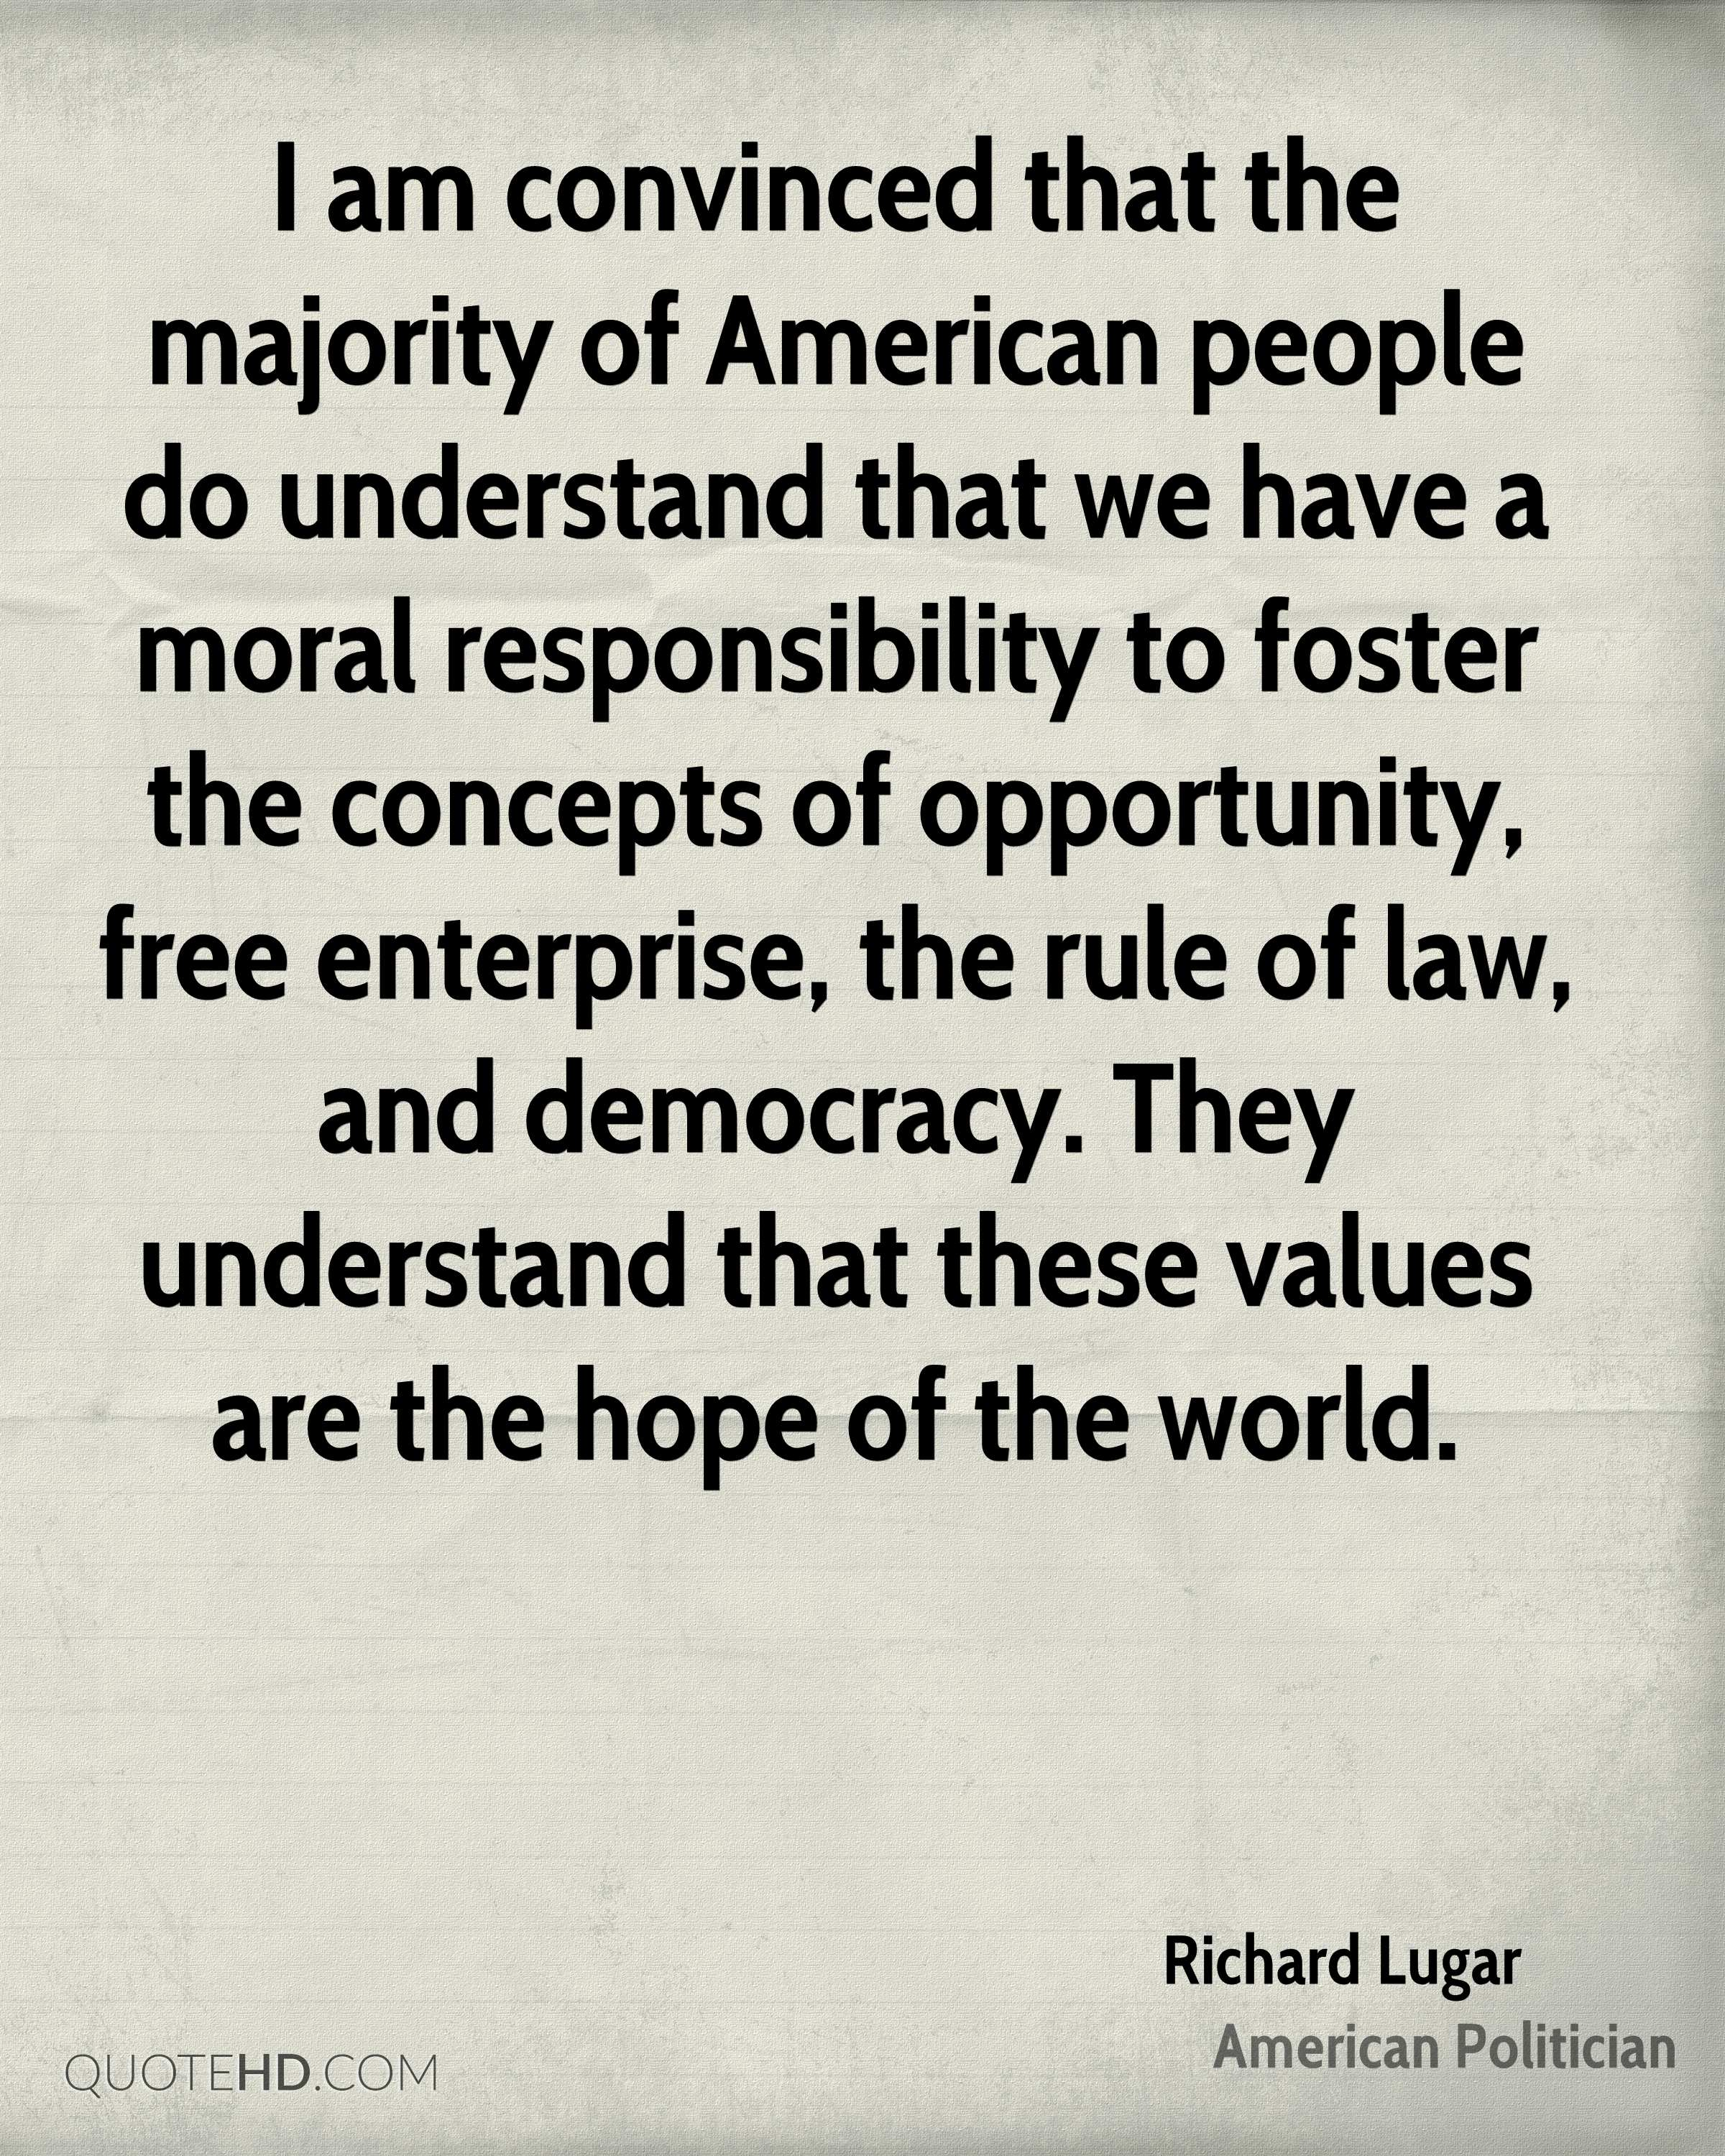 I am convinced that the majority of American people do understand that we have a moral responsibility to foster the concepts of opportunity, free enterprise, the rule of law, and democracy. They understand that these values are the hope of the world.